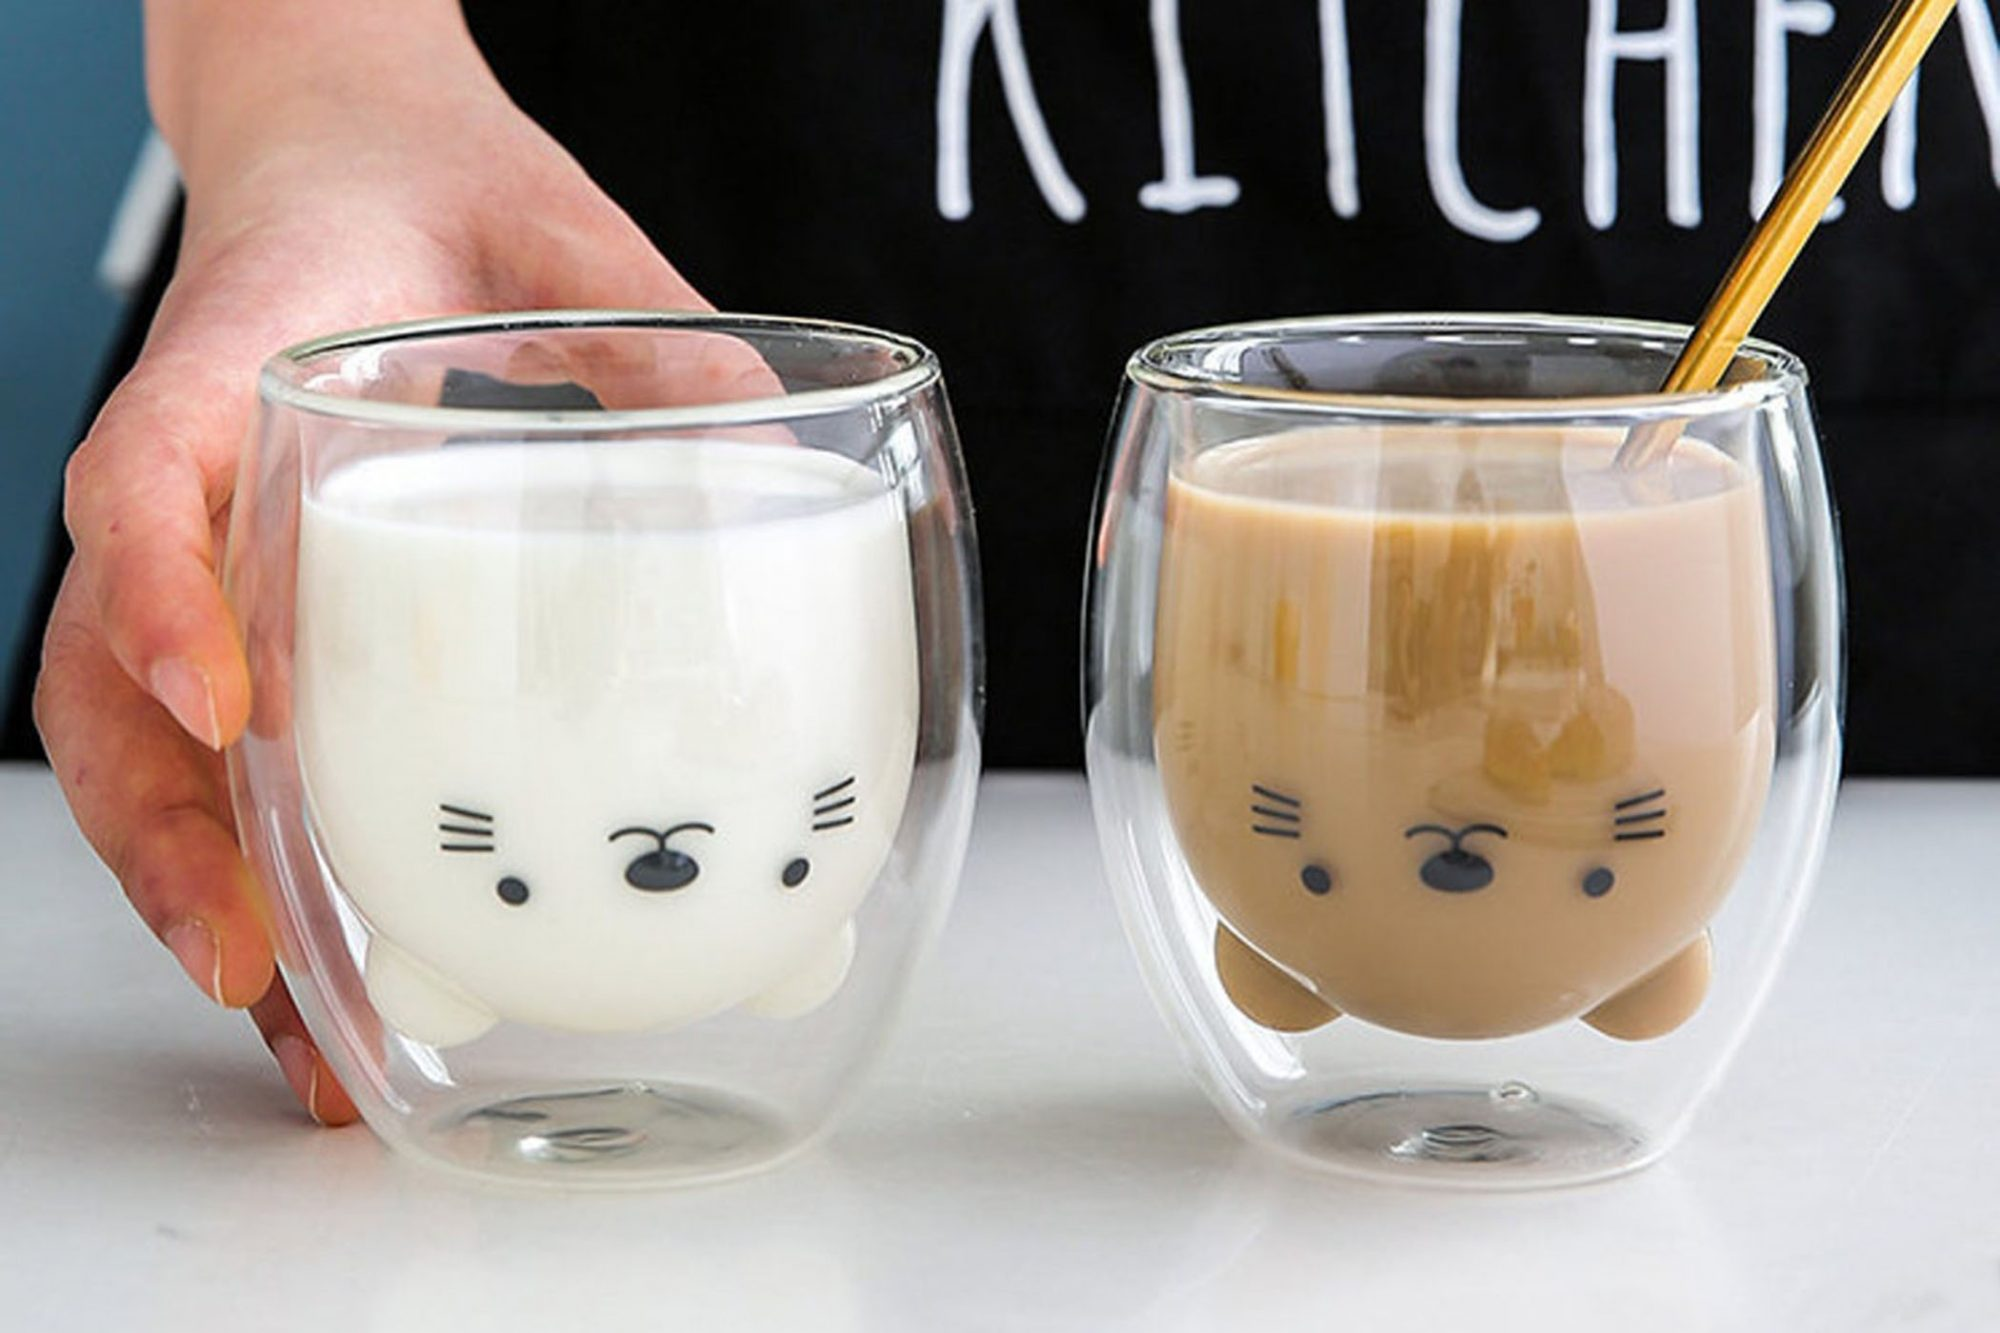 clear cat mugs holding with milk and coffee